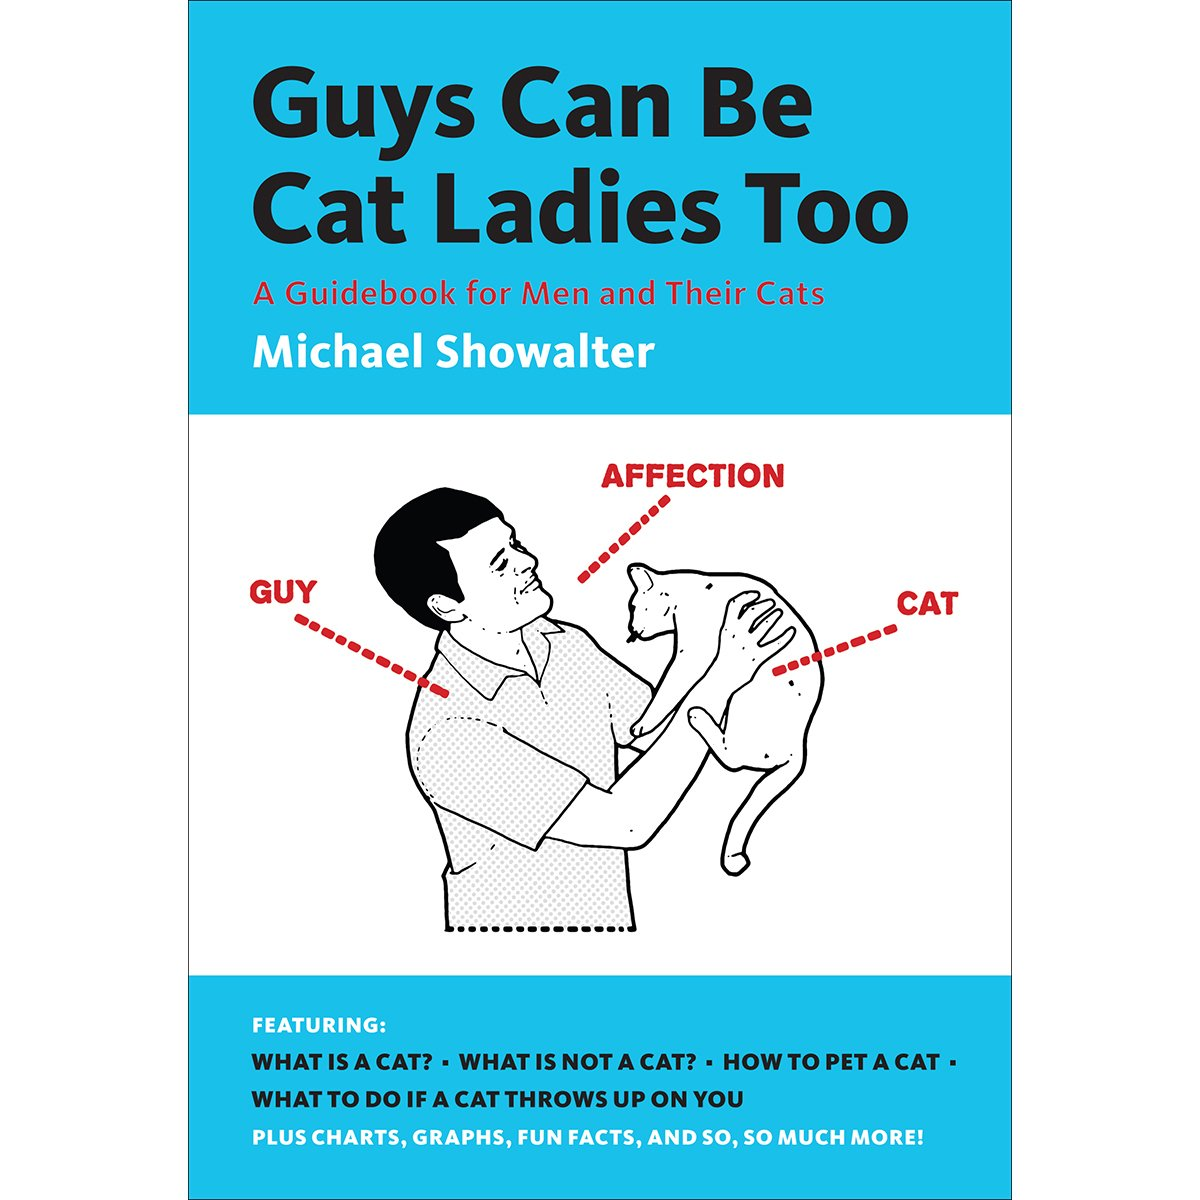 guys-can-be-cat-ladies-too-a-guidebook-for-men-and-their-cats